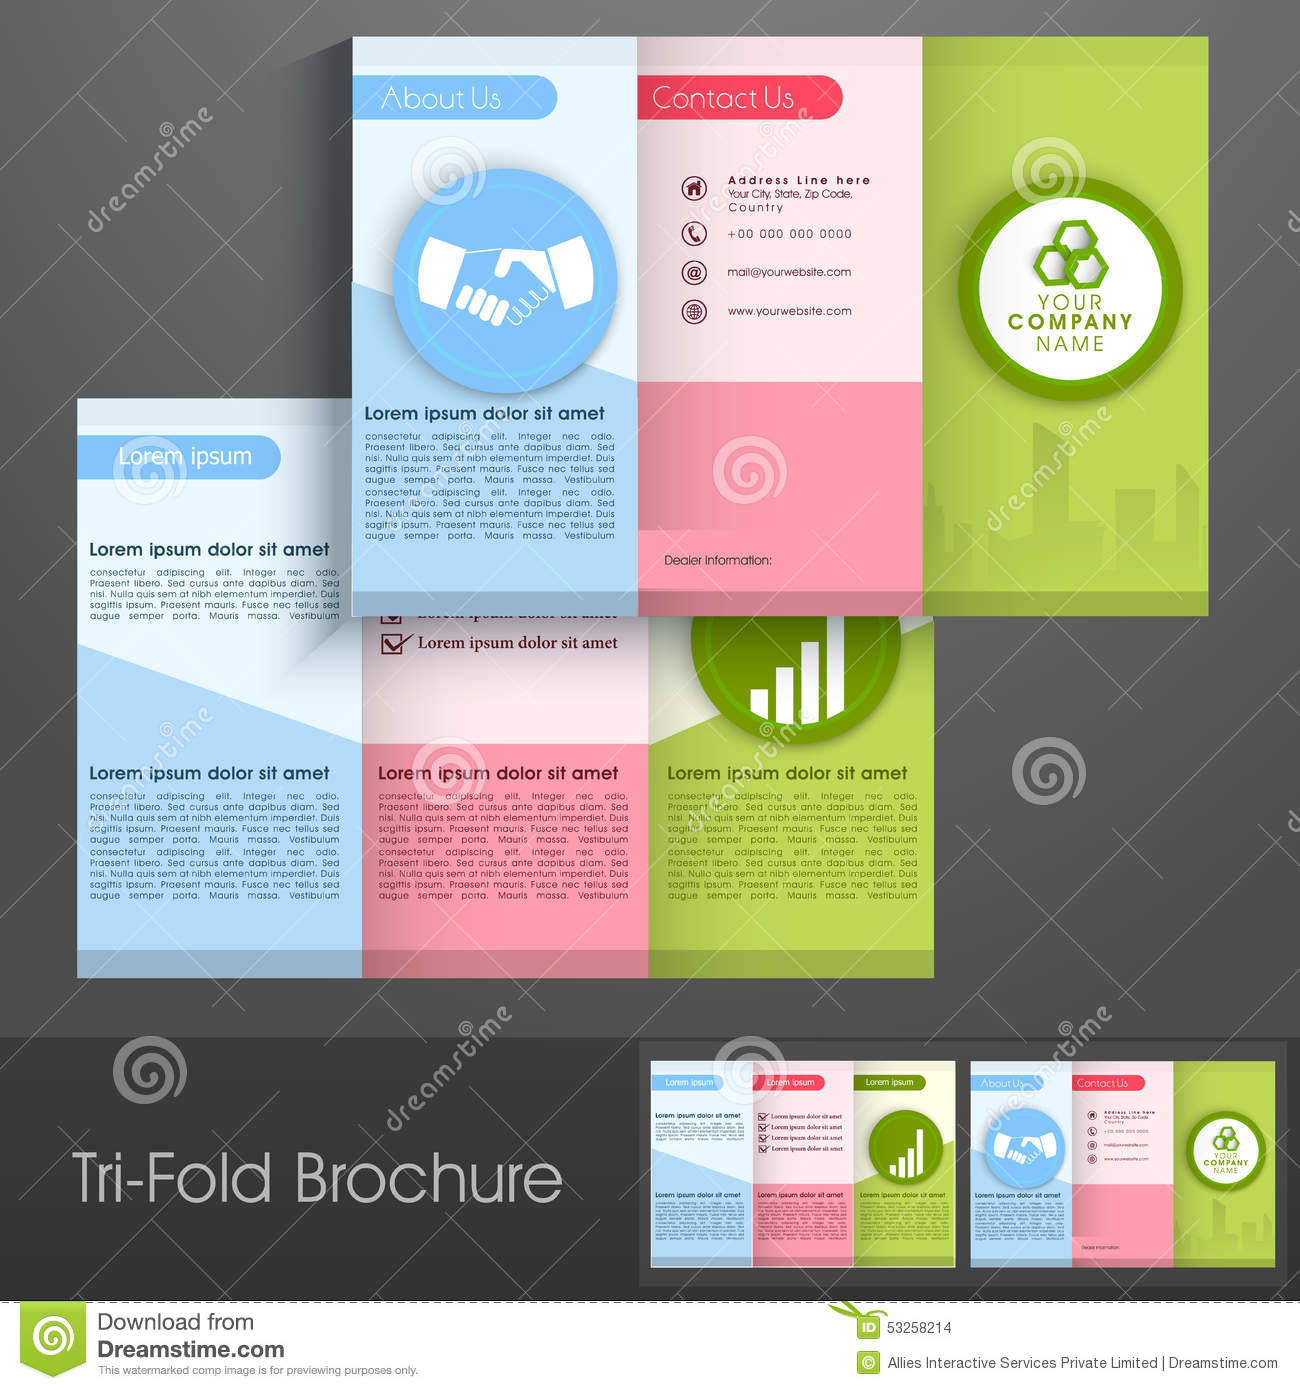 colorful trifold brochure flyer or template for business stock illustration image 53258214. Black Bedroom Furniture Sets. Home Design Ideas